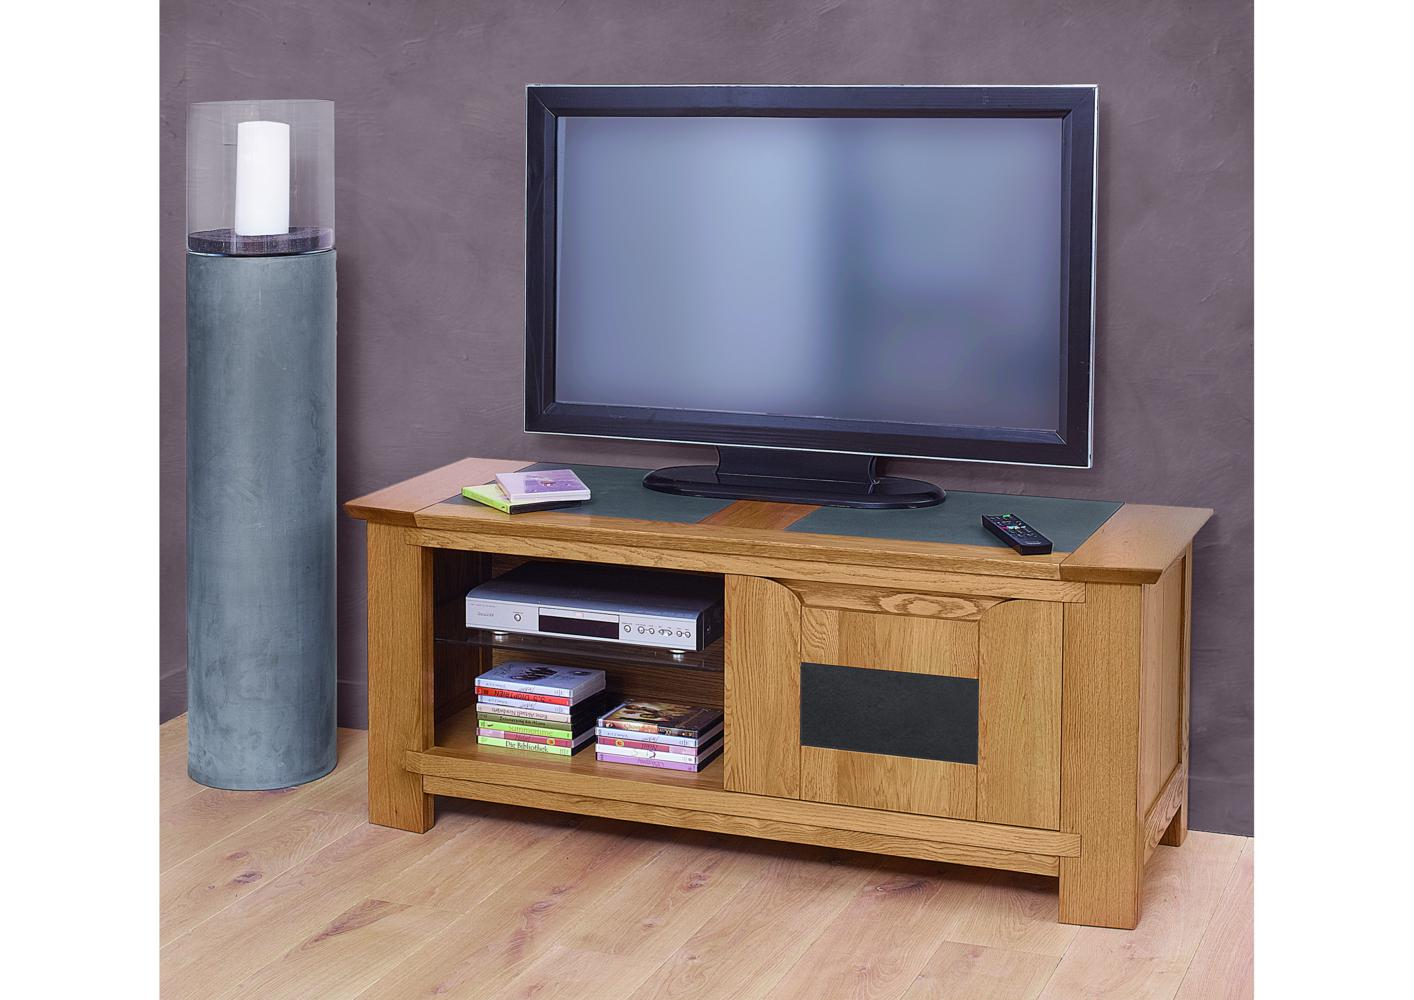 acheter votre meuble tv hifi conemporain 1 porte 1 niche. Black Bedroom Furniture Sets. Home Design Ideas